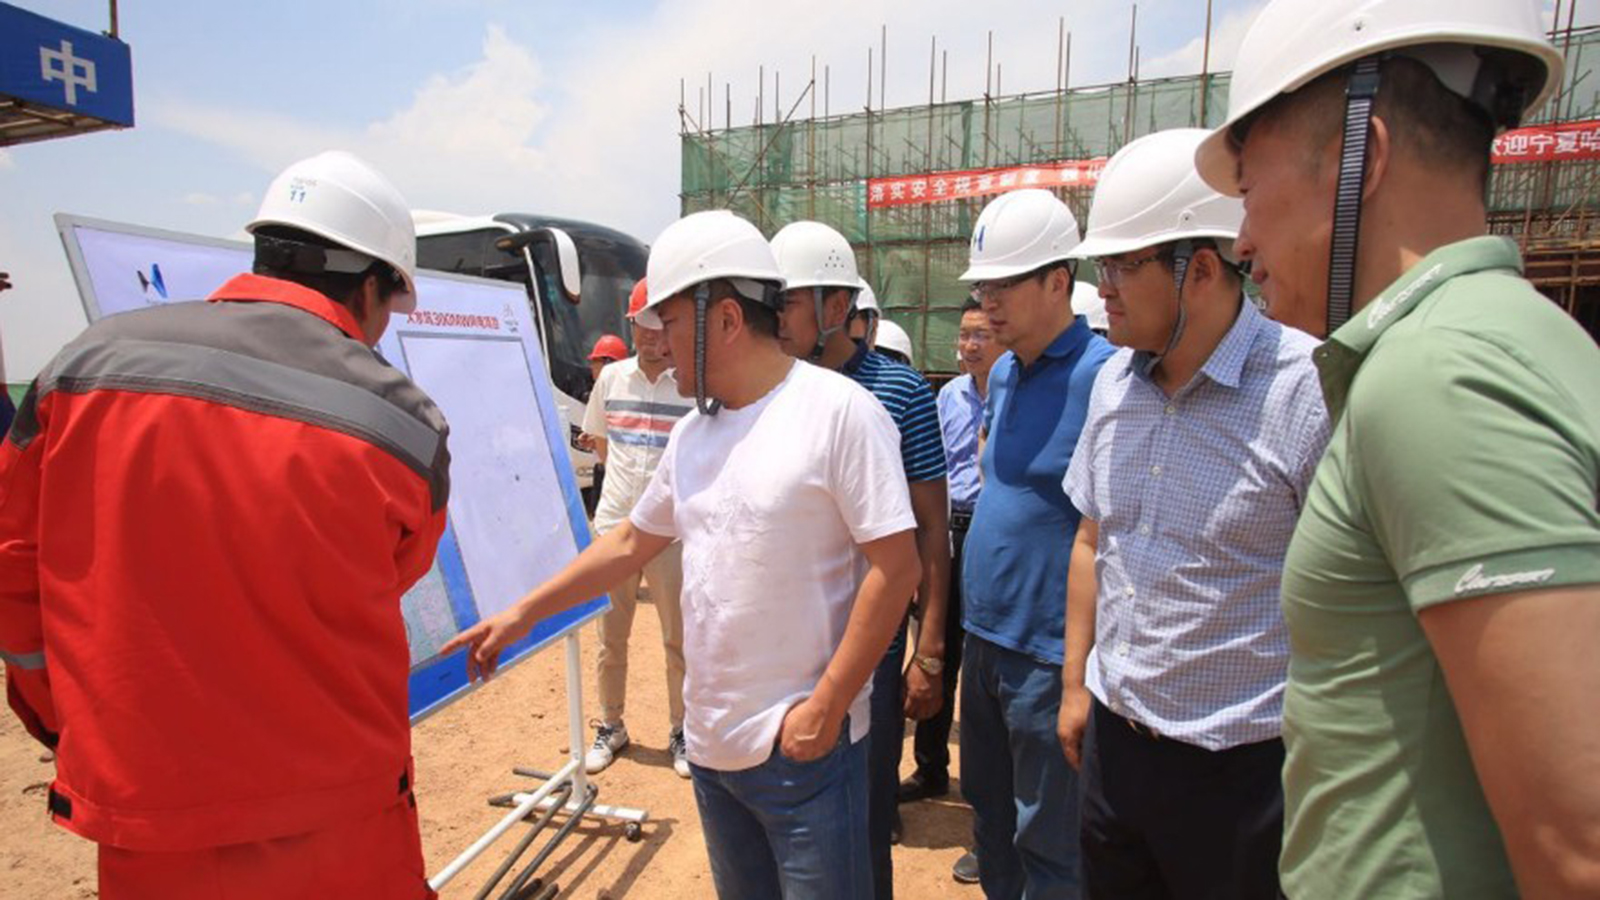 Hanas Chairman Ma Fuqiang and His Entourage Inspect Dashuikeng and Shijiawan Wind Power Projects